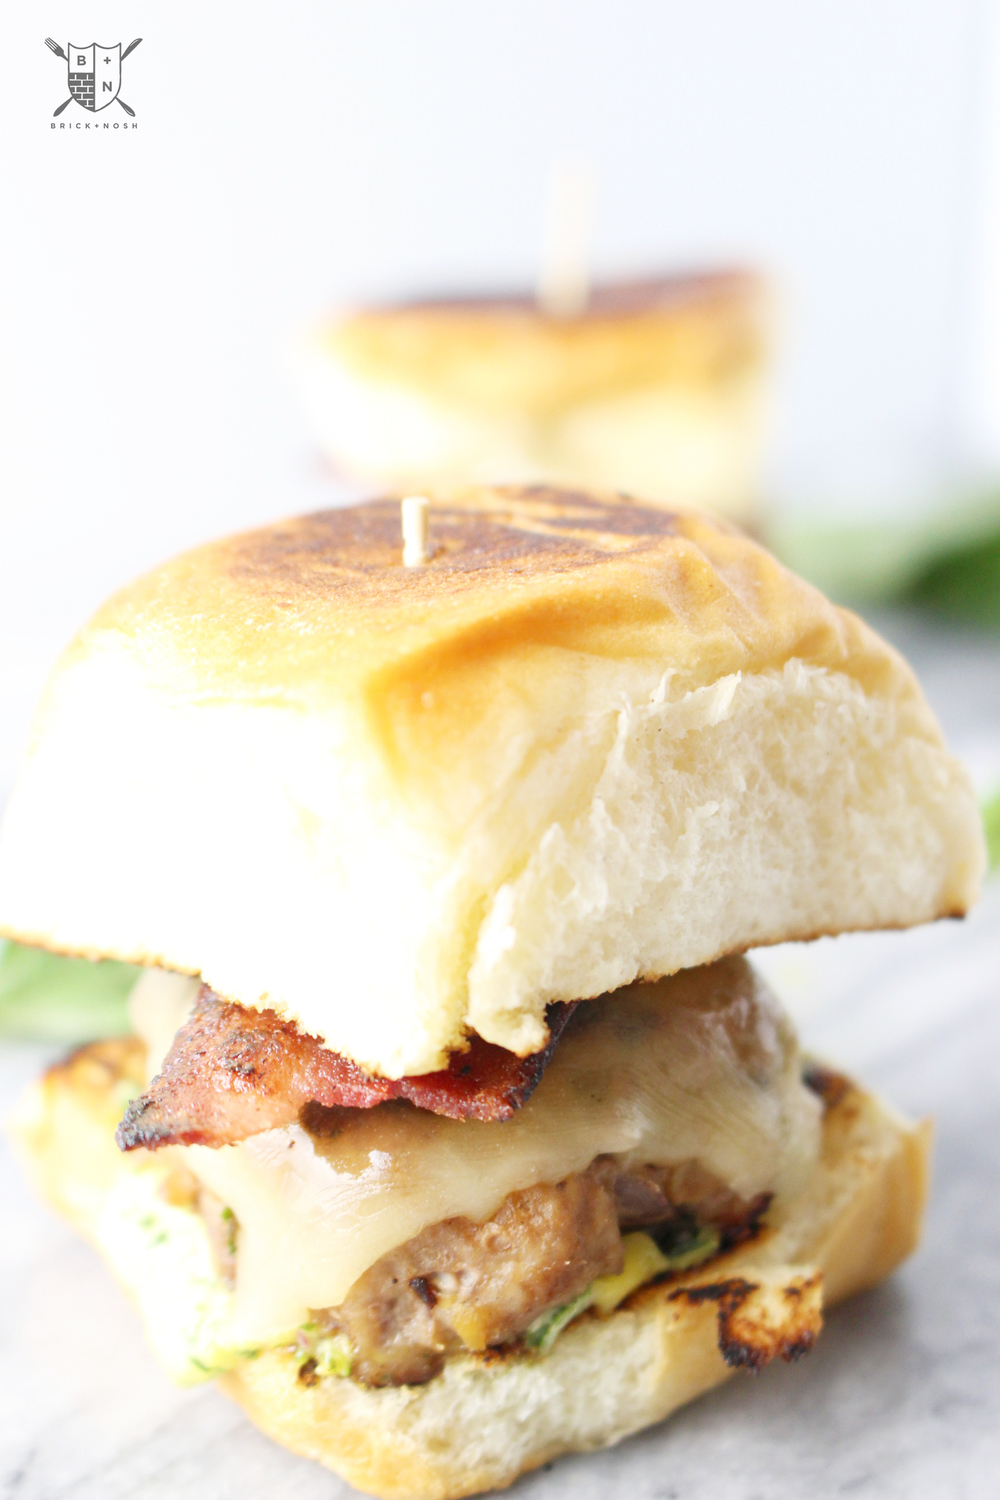 MangoBasilTurkeySliders_Notes3.jpg